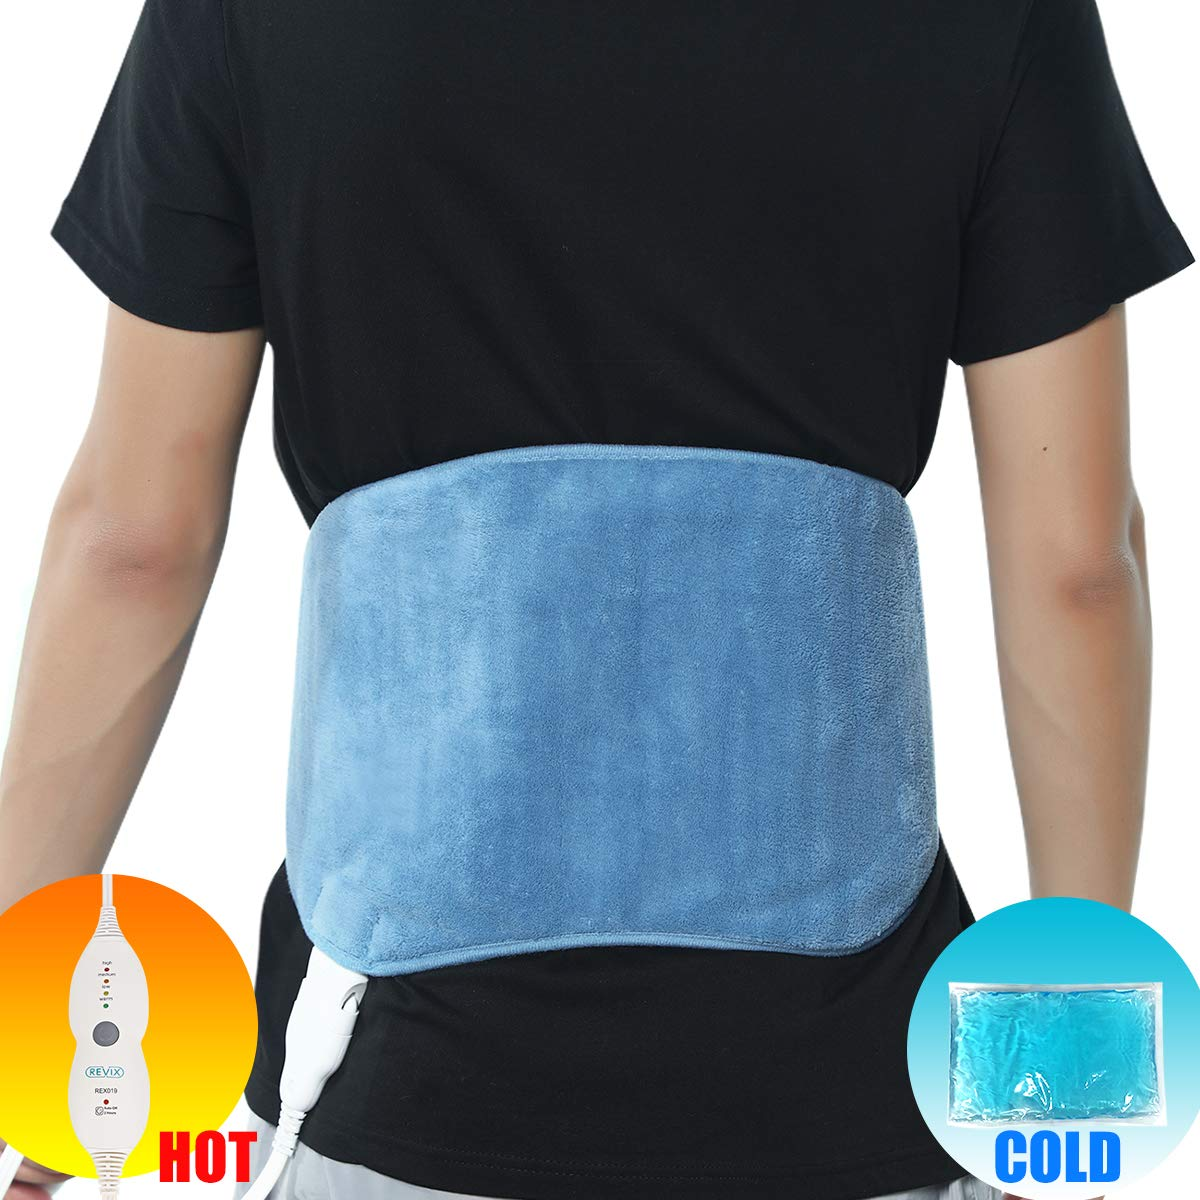 REVIX Lower Back Heating Pad with Hot Cold Gel Pack and Adjustable Belt, Electric Heat Wrap for Waist Lumbar Stomach and Shoulder Pain Relief, UL Listed, Blue by REVIX